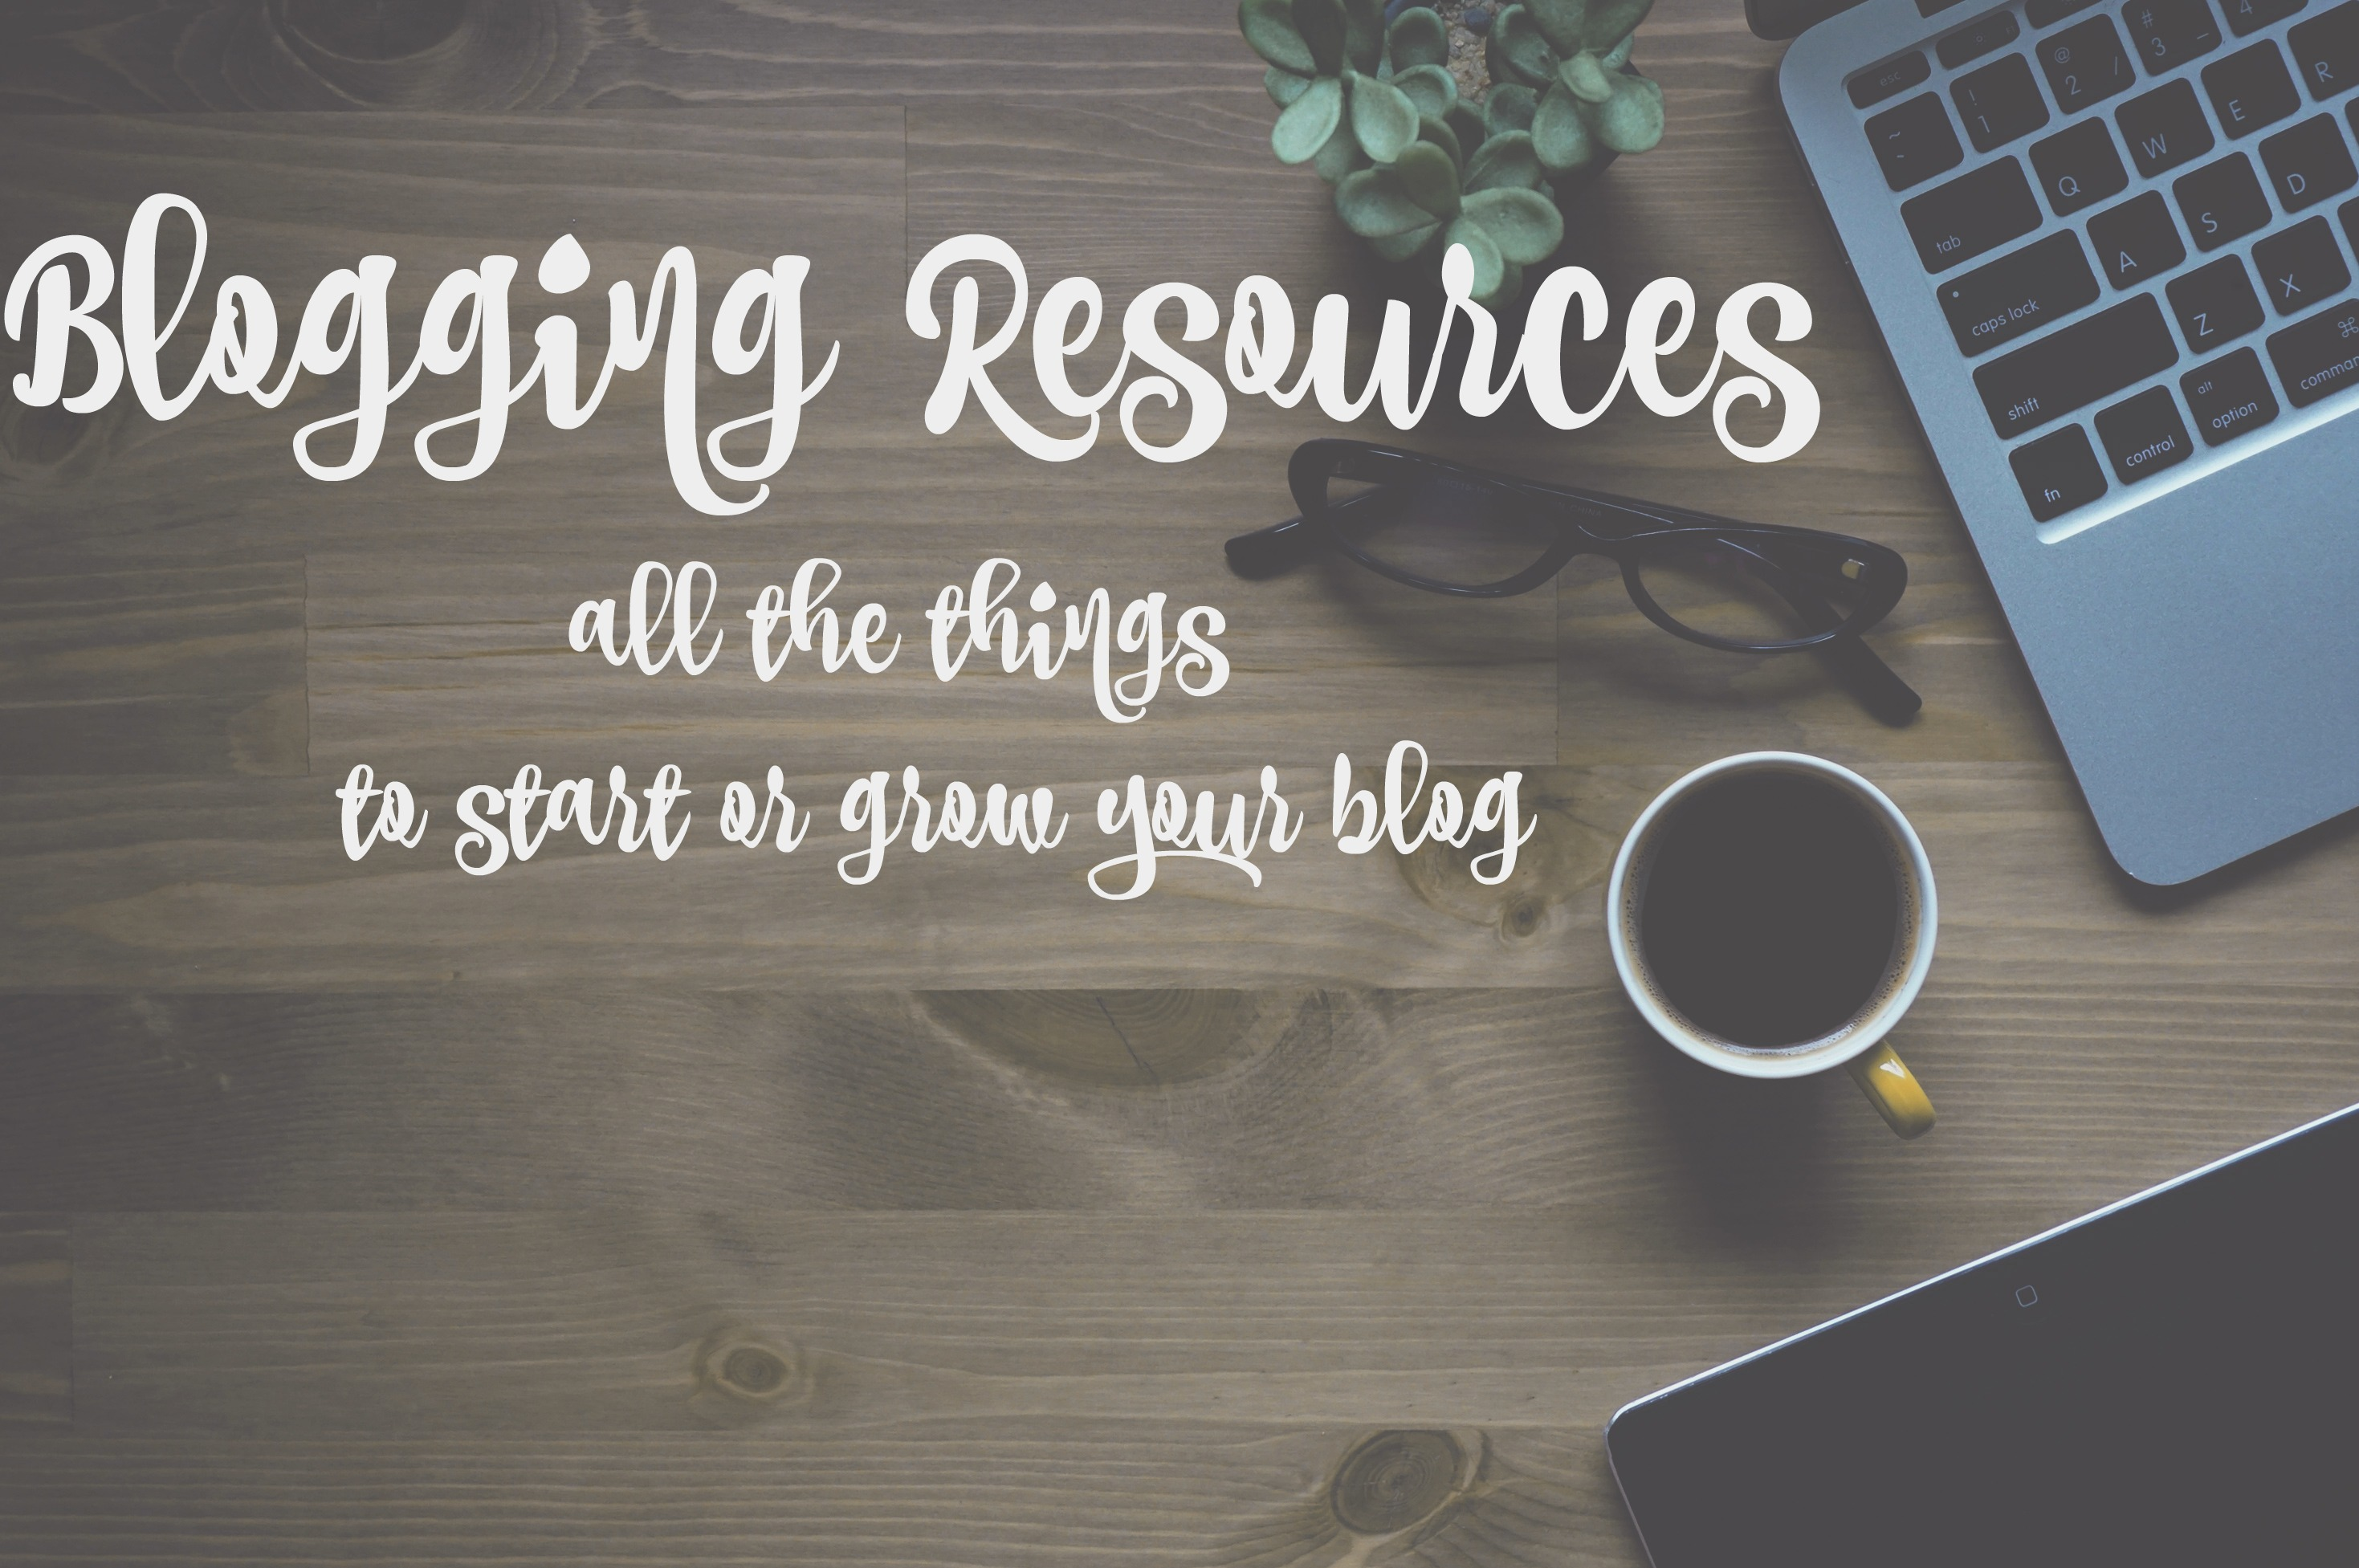 Blogging Resources - All the Things to Start or Grow Your Blog